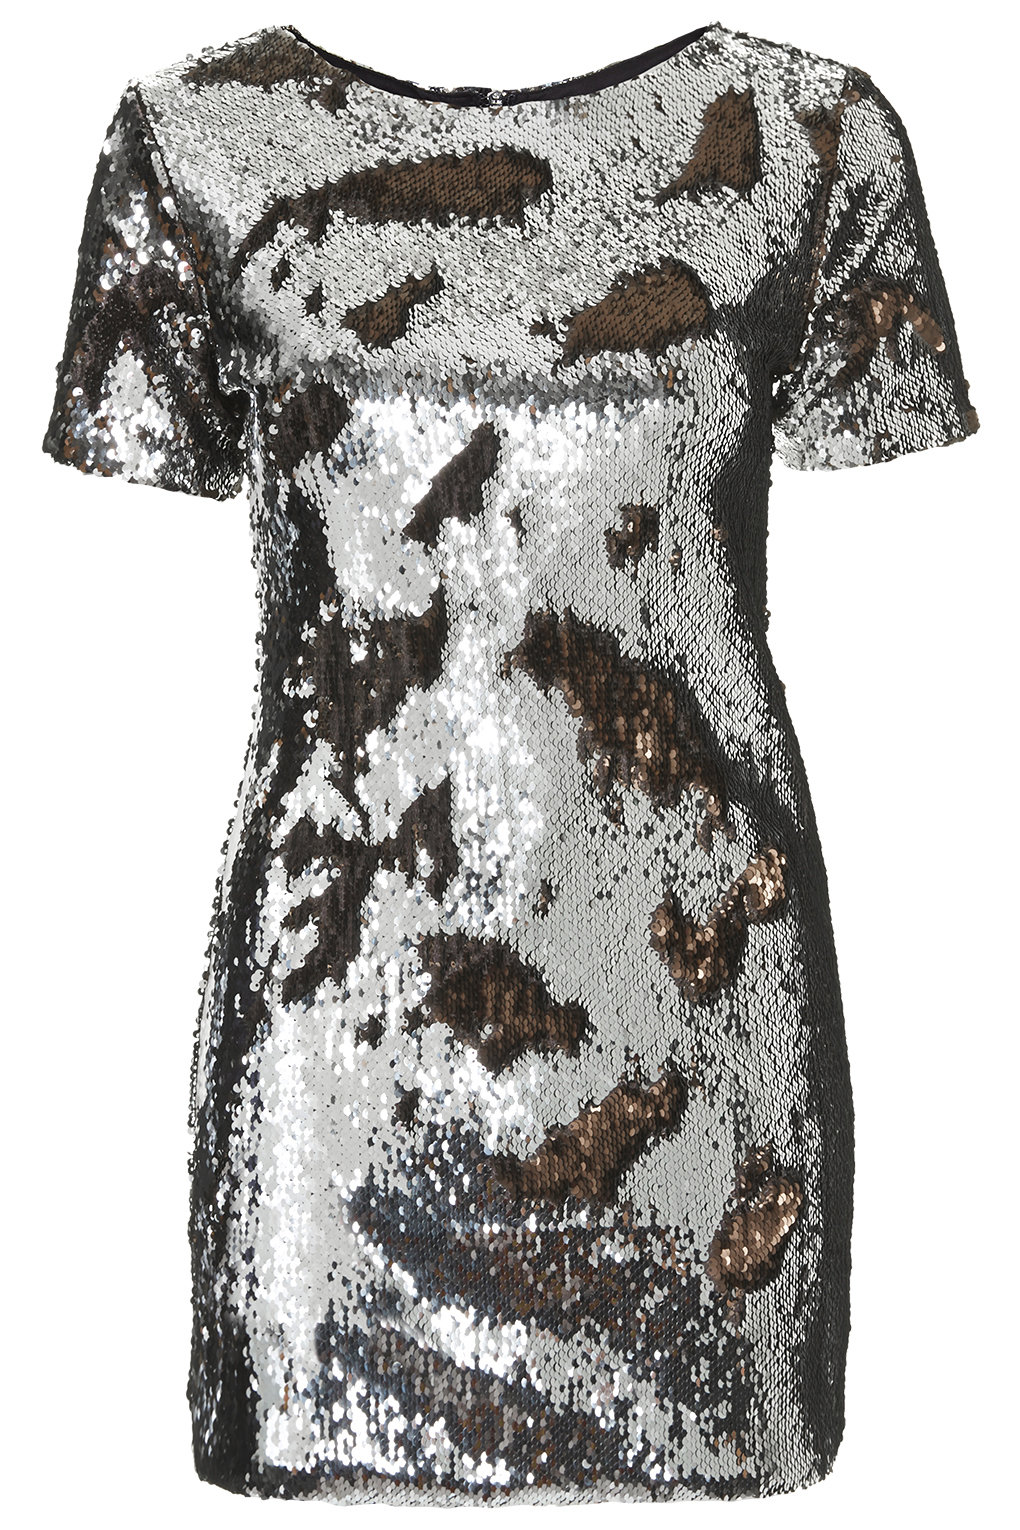 """Two-Tone Sequin Bodycon Dress"" by Top Shop"